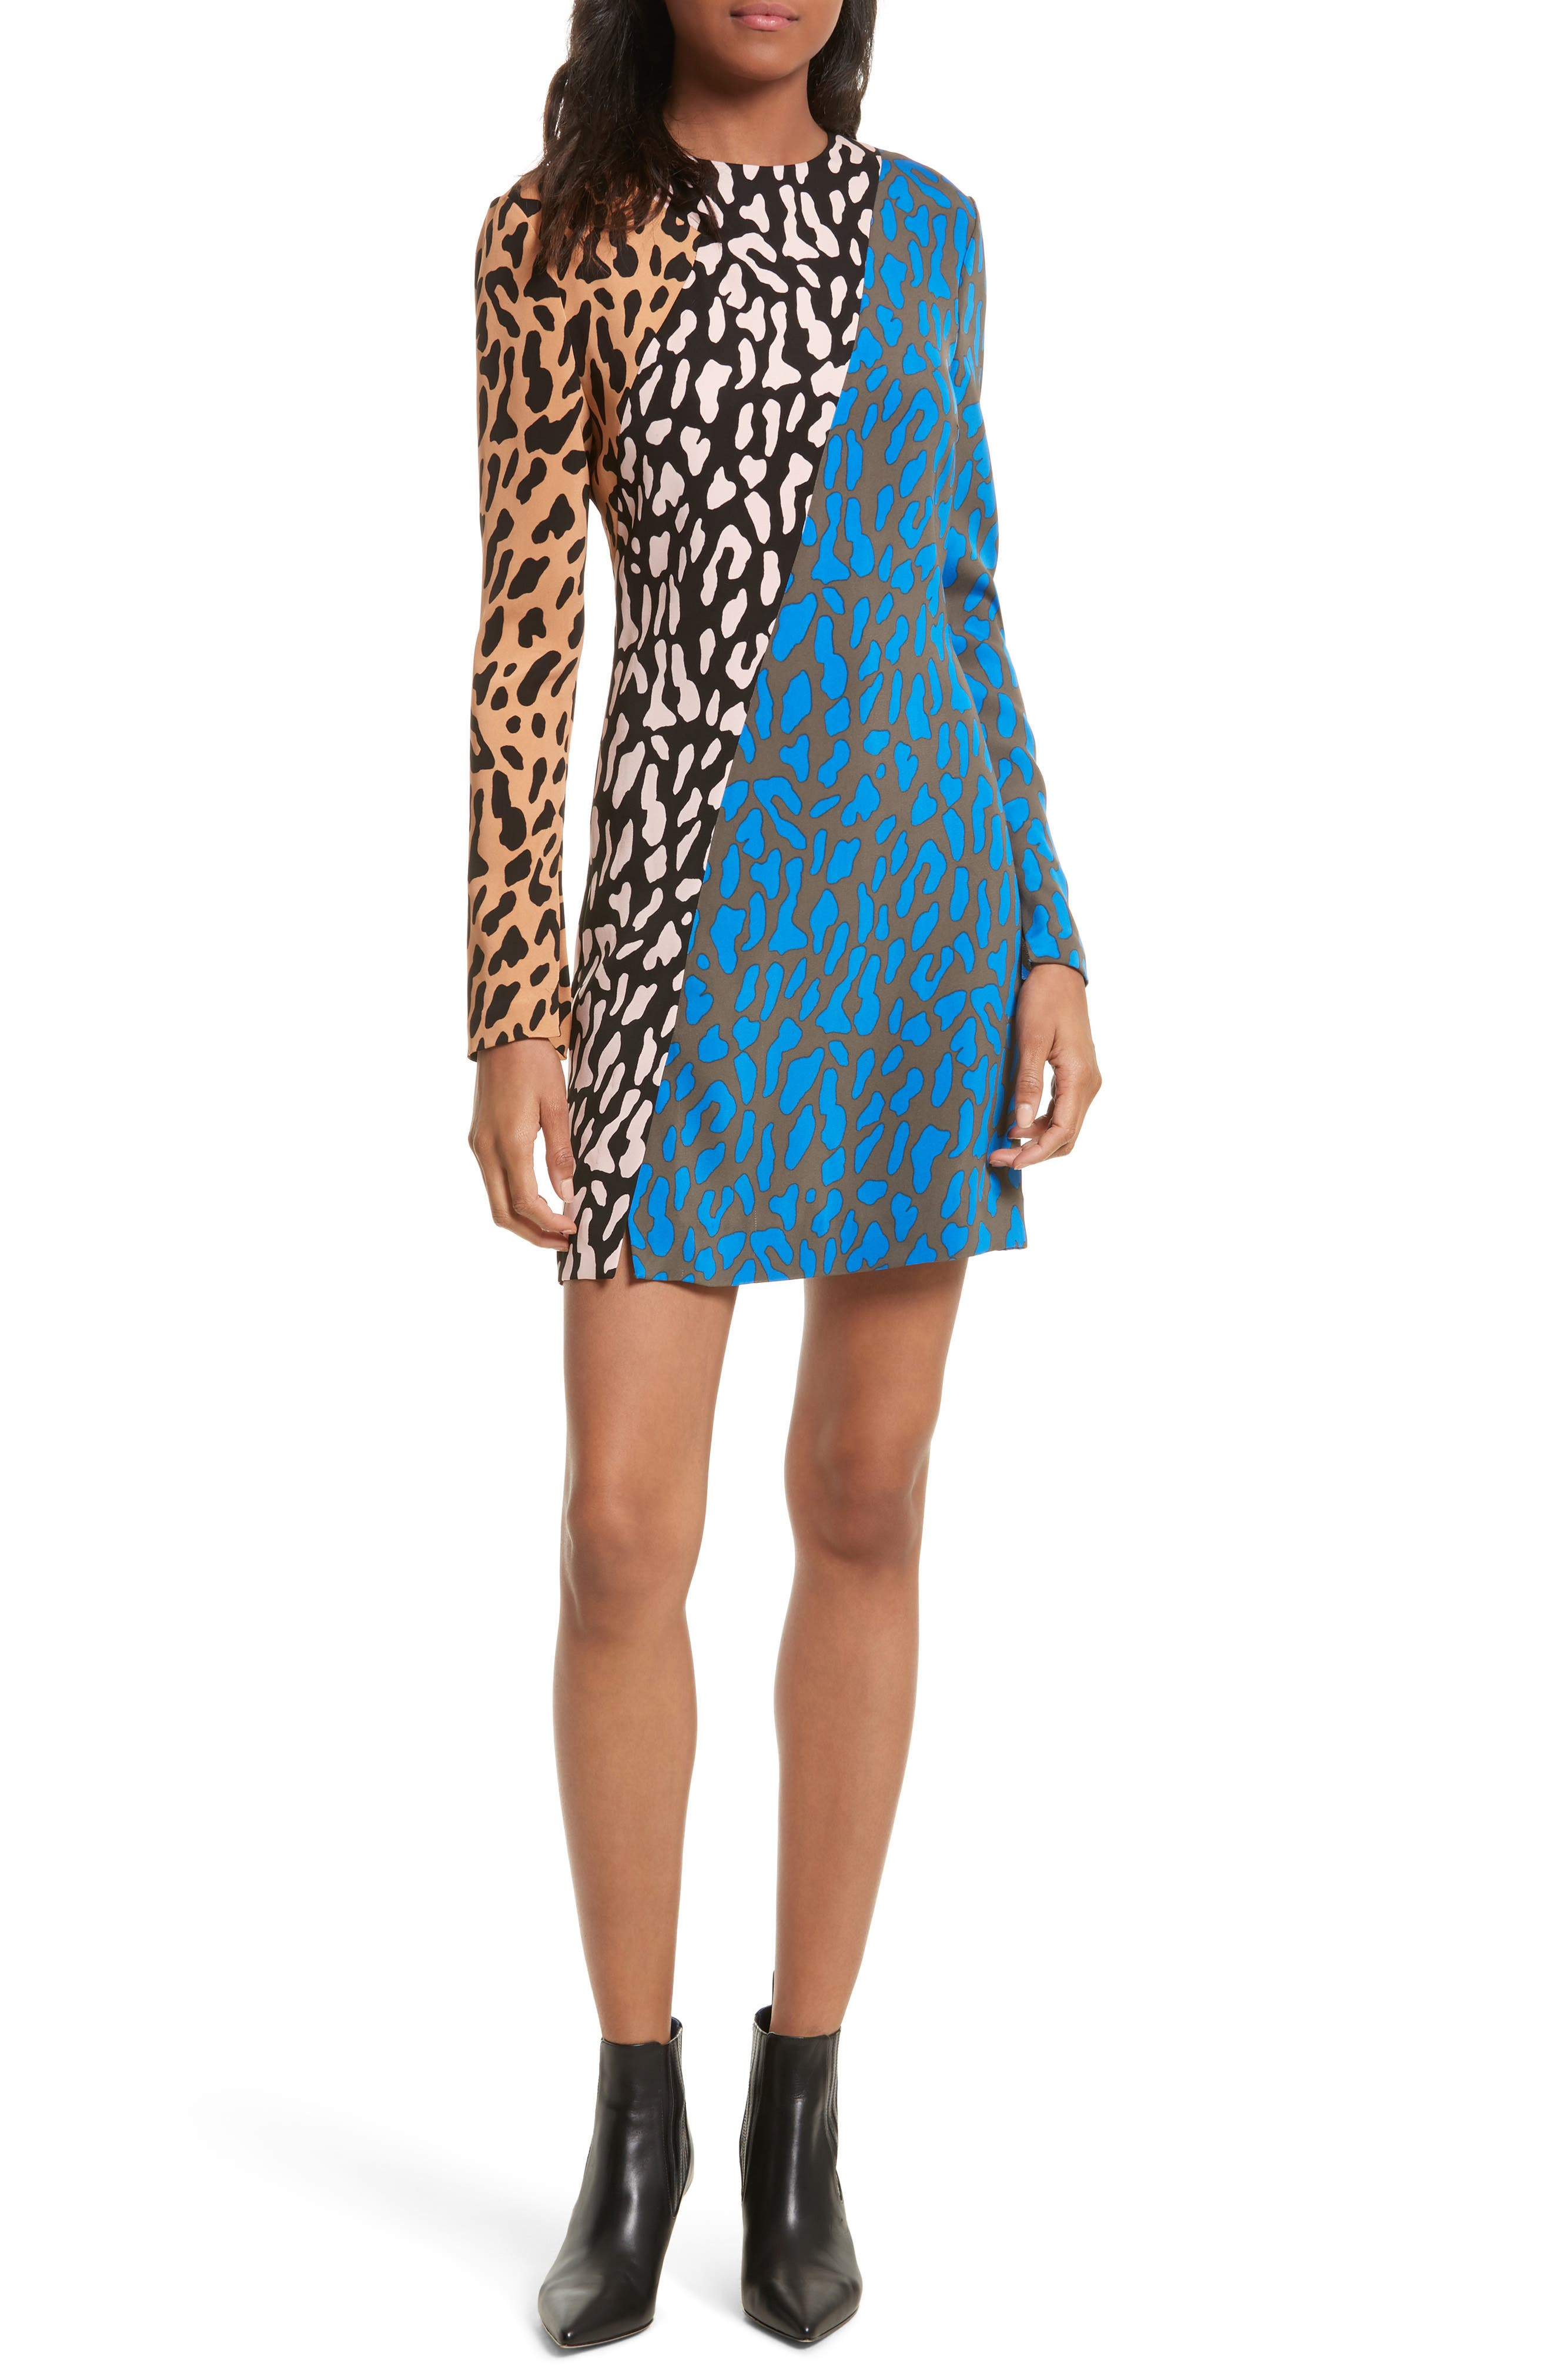 Diane von Furstenberg Bias Fitted Print Dress